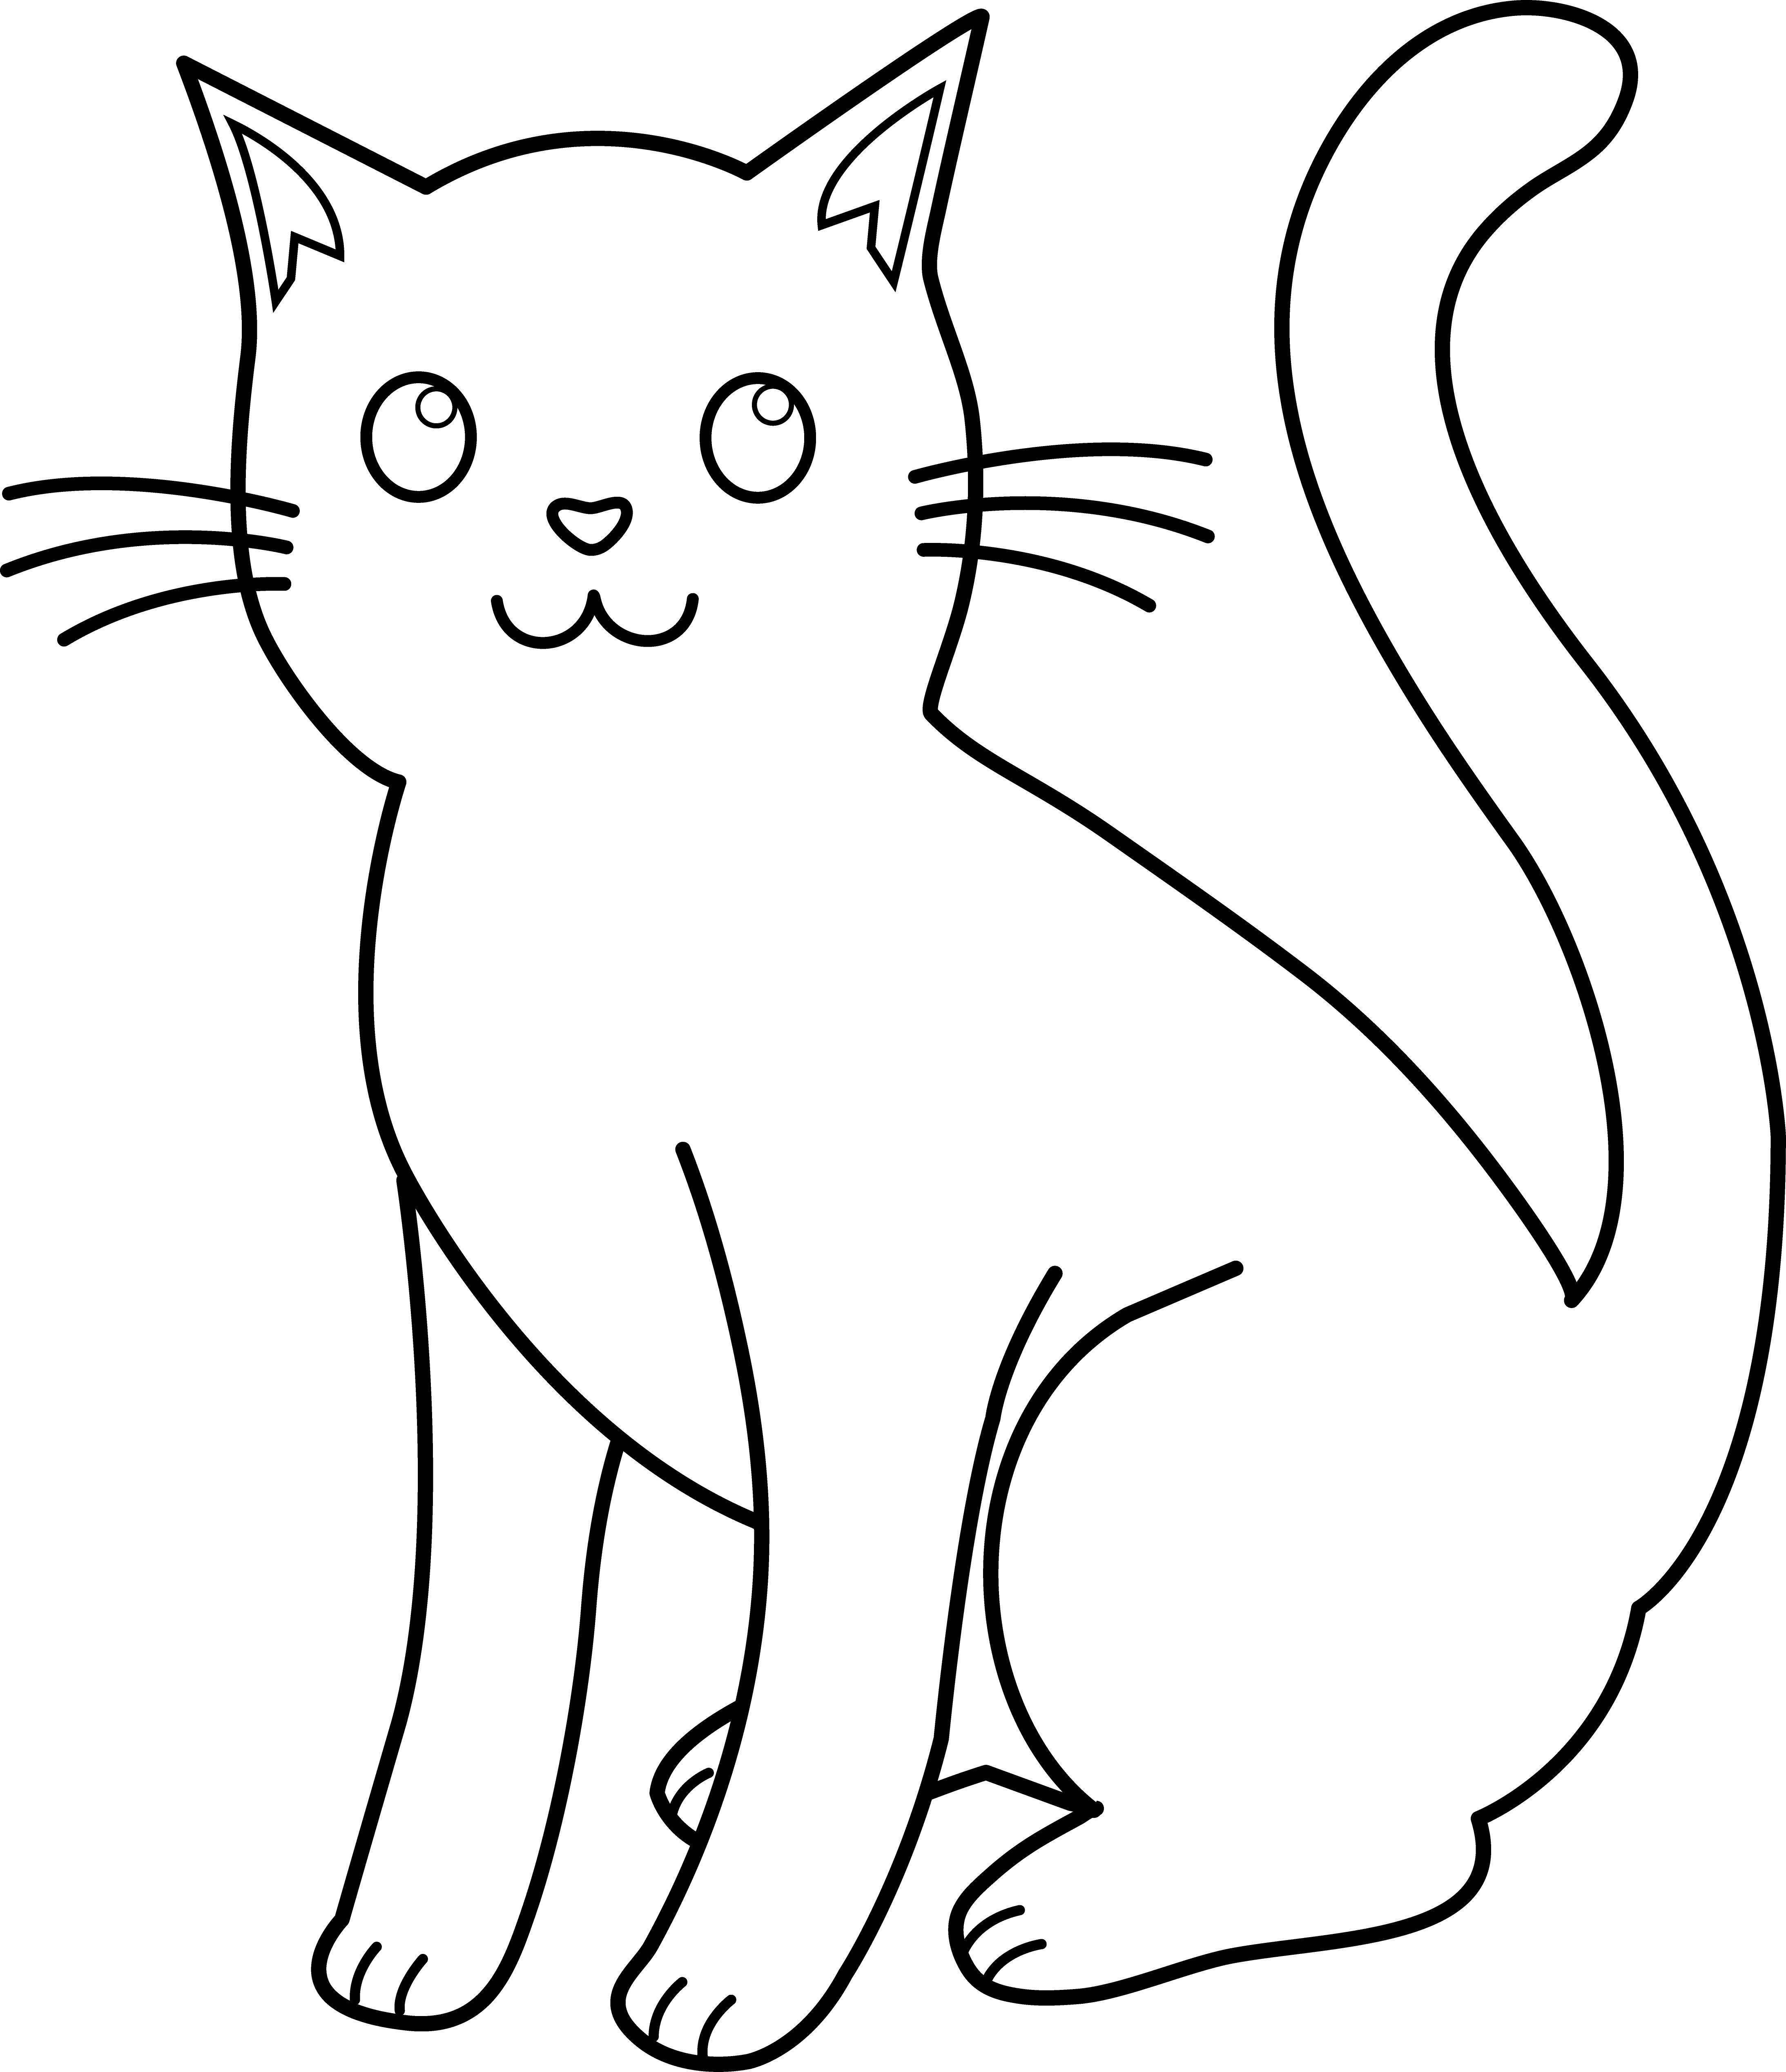 Kitty Cat Line Art For Coloring I Love Cats Cat Coloring Cat Coloring Page Cat Clipart Kitten Drawing